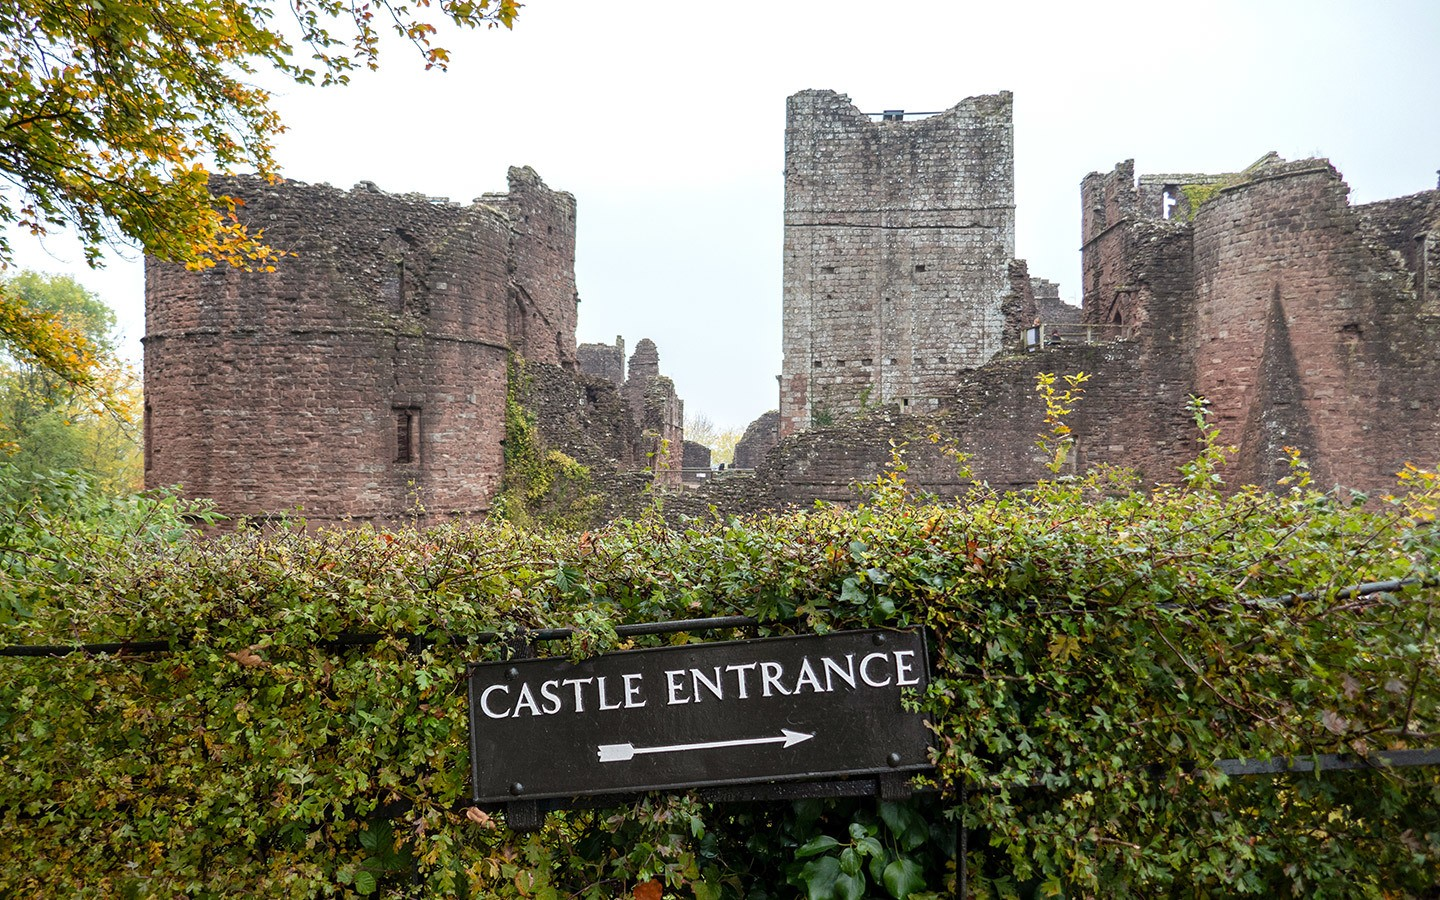 The medieval Goodrich Castle